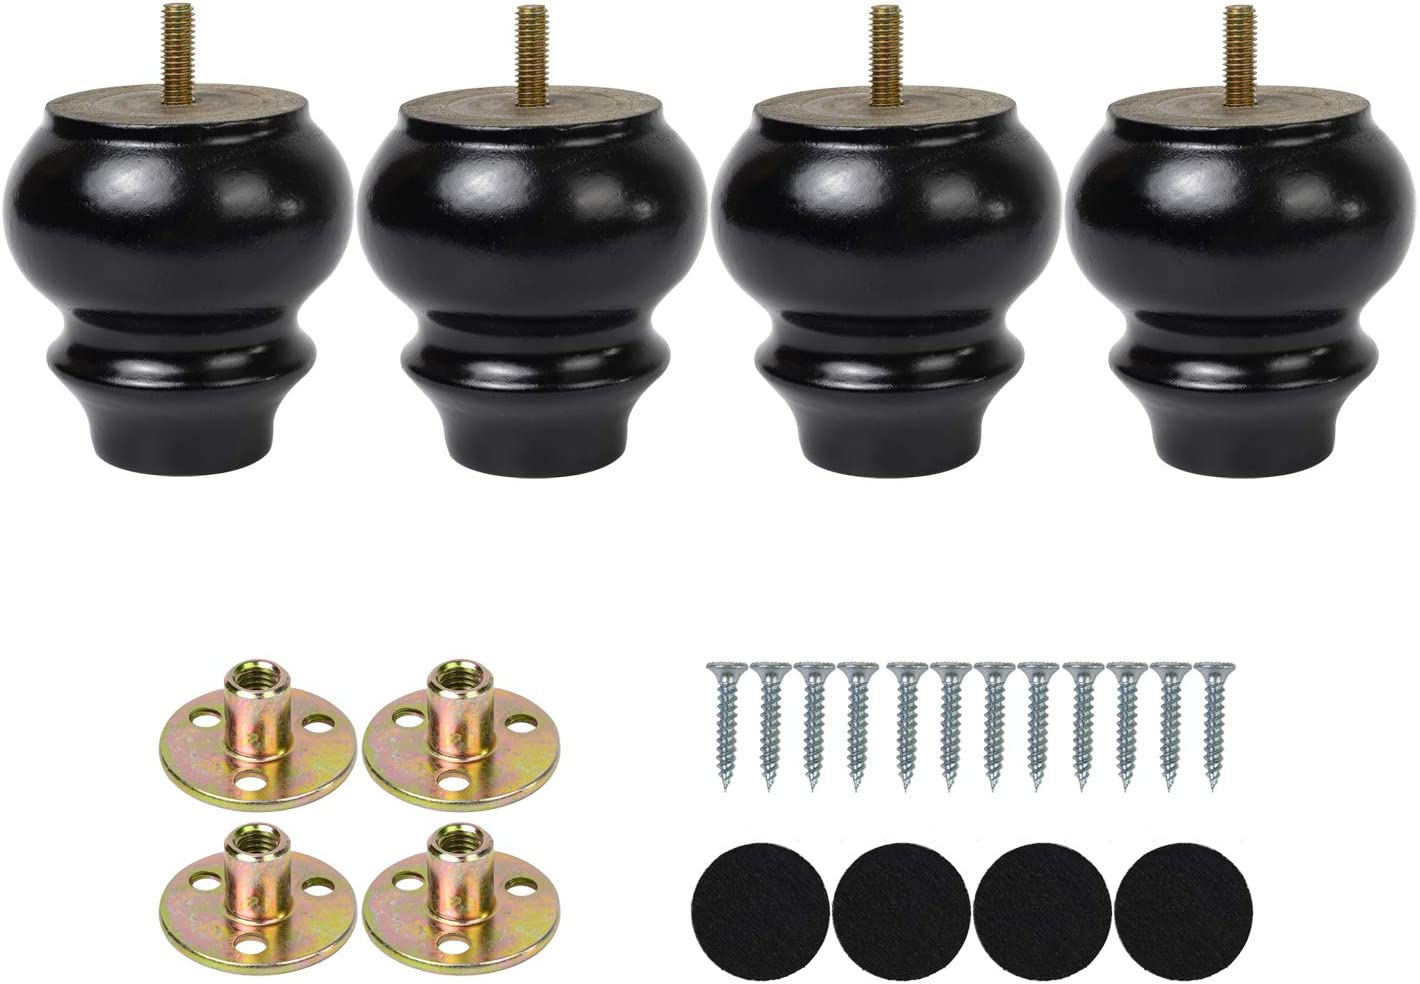 3Inch Black Bun Feet Replacement Legs for Couch Sofa Legs Height Raiser with Pre-Drilled 5/16 Inch Bolt & Mounting Plate & Screws Set of 4